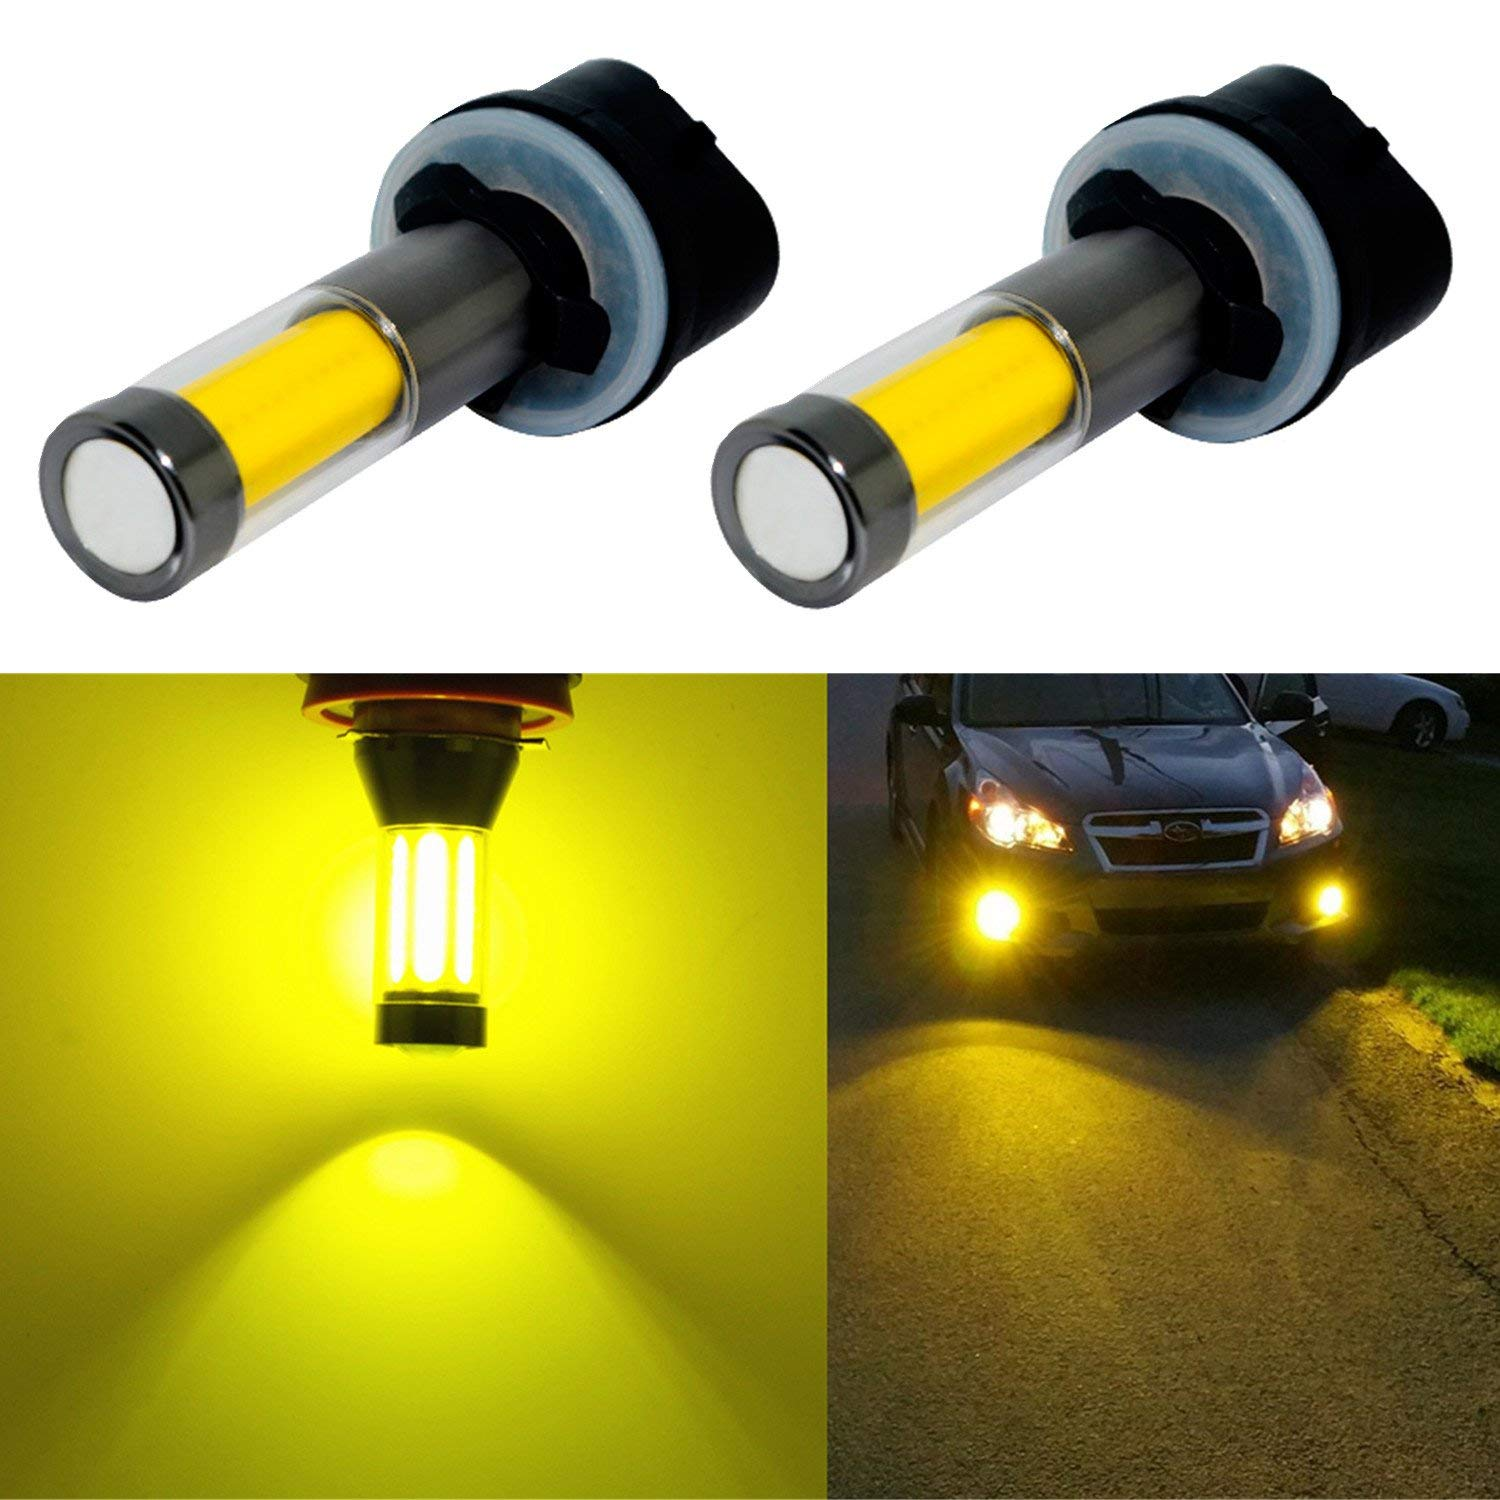 H7 LED Fog Lights Bulb Yellow Amber Gold Golden 3000K for Trucks Cars Lamps Kit Plug Error Free All in One High Power Replacement Bulbs 12V 30W 2800LM Super Bright COB Chips 1 Year Warranty【1797】